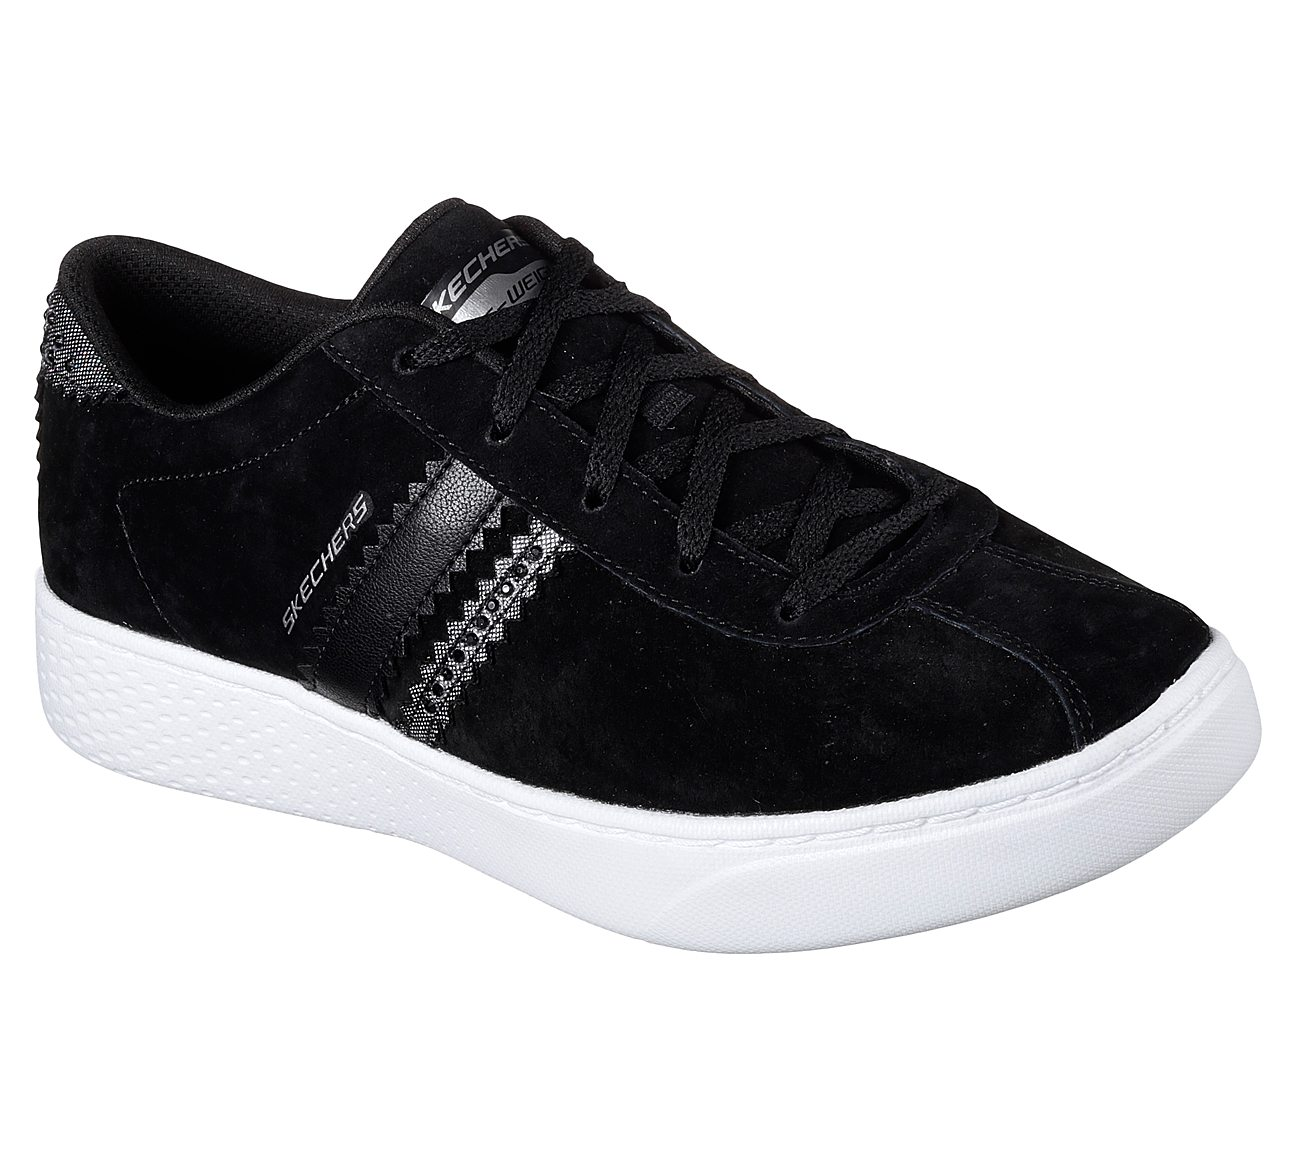 c2848af3616a Buy SKECHERS Super Cup - New Concept Sport Shoes only  70.00